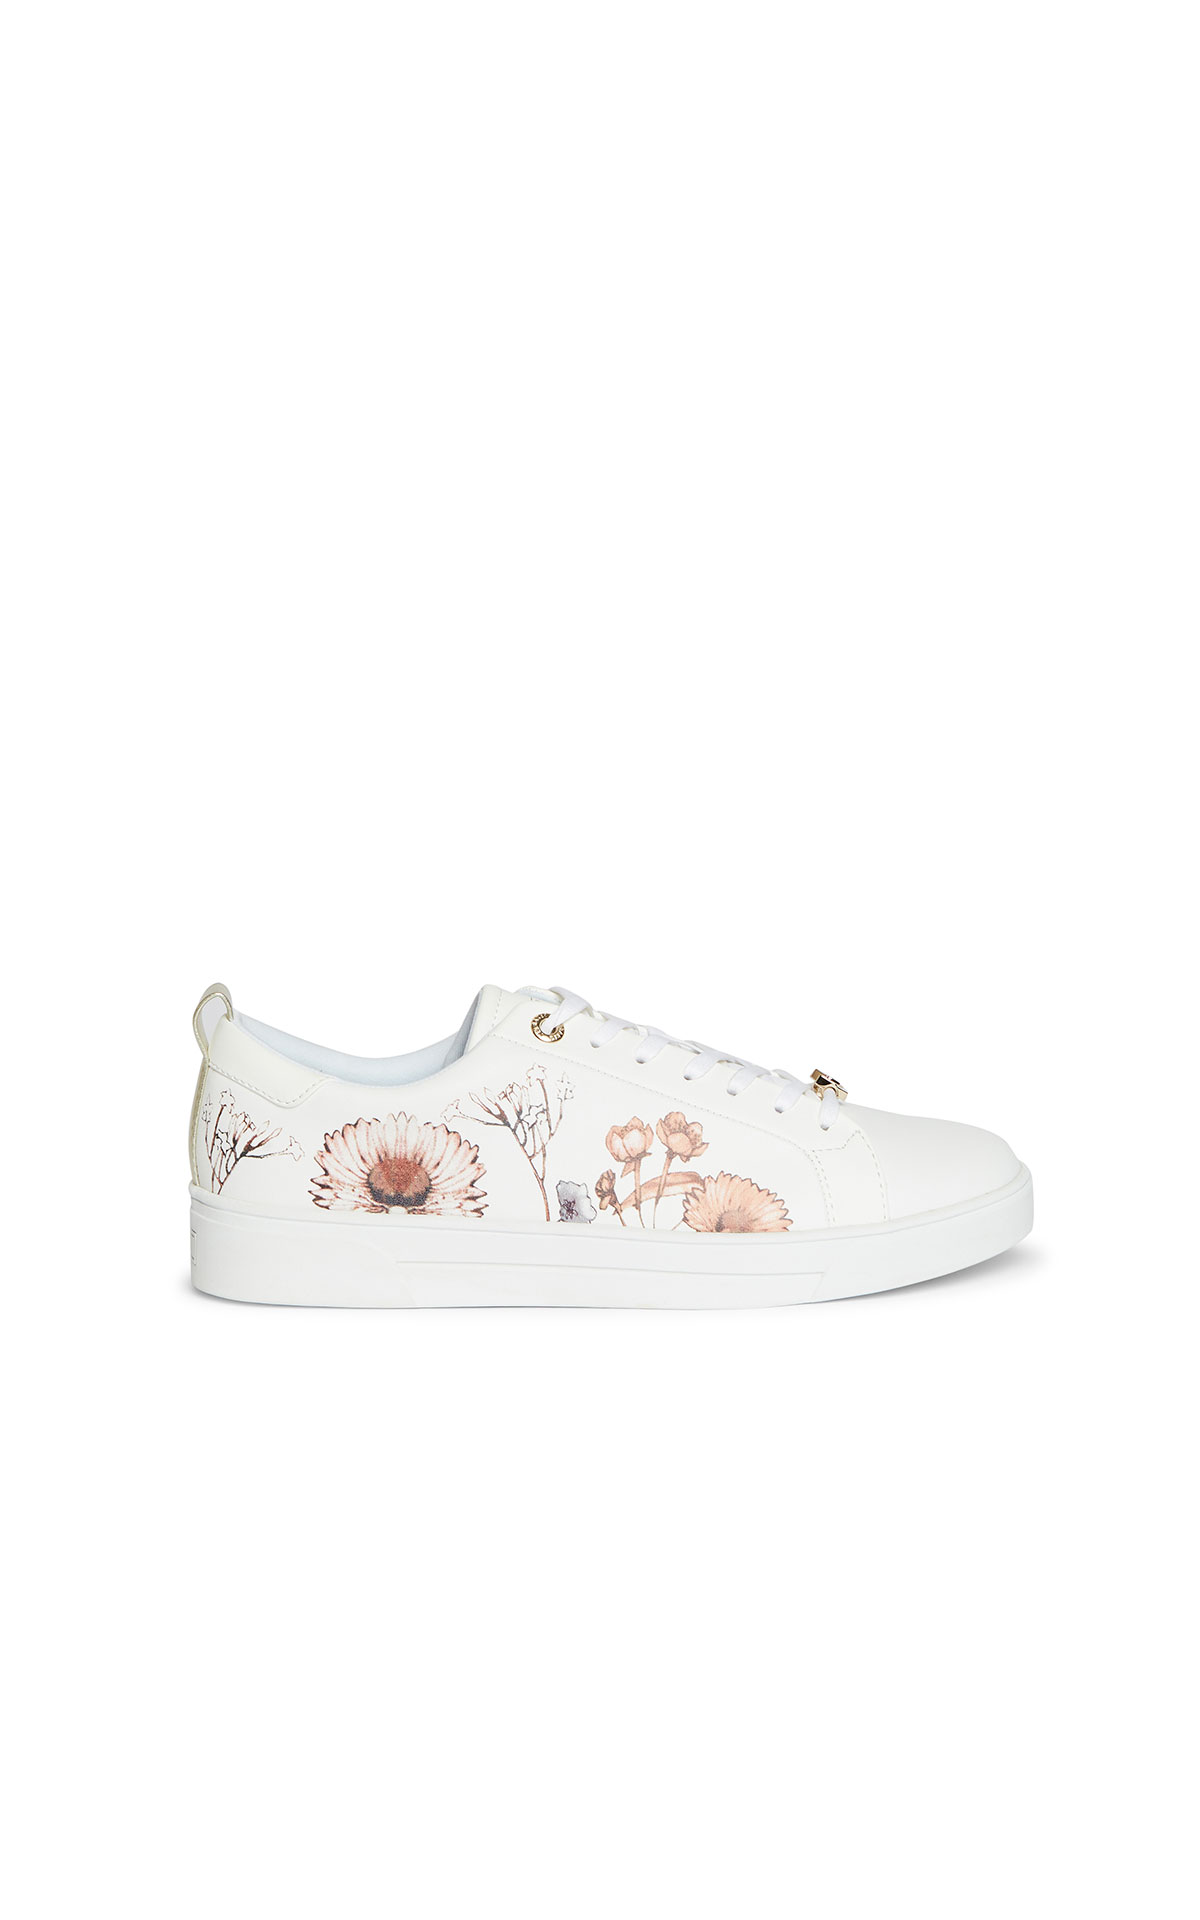 Ted Baker Riallii amethyst trainers from Bicester Village